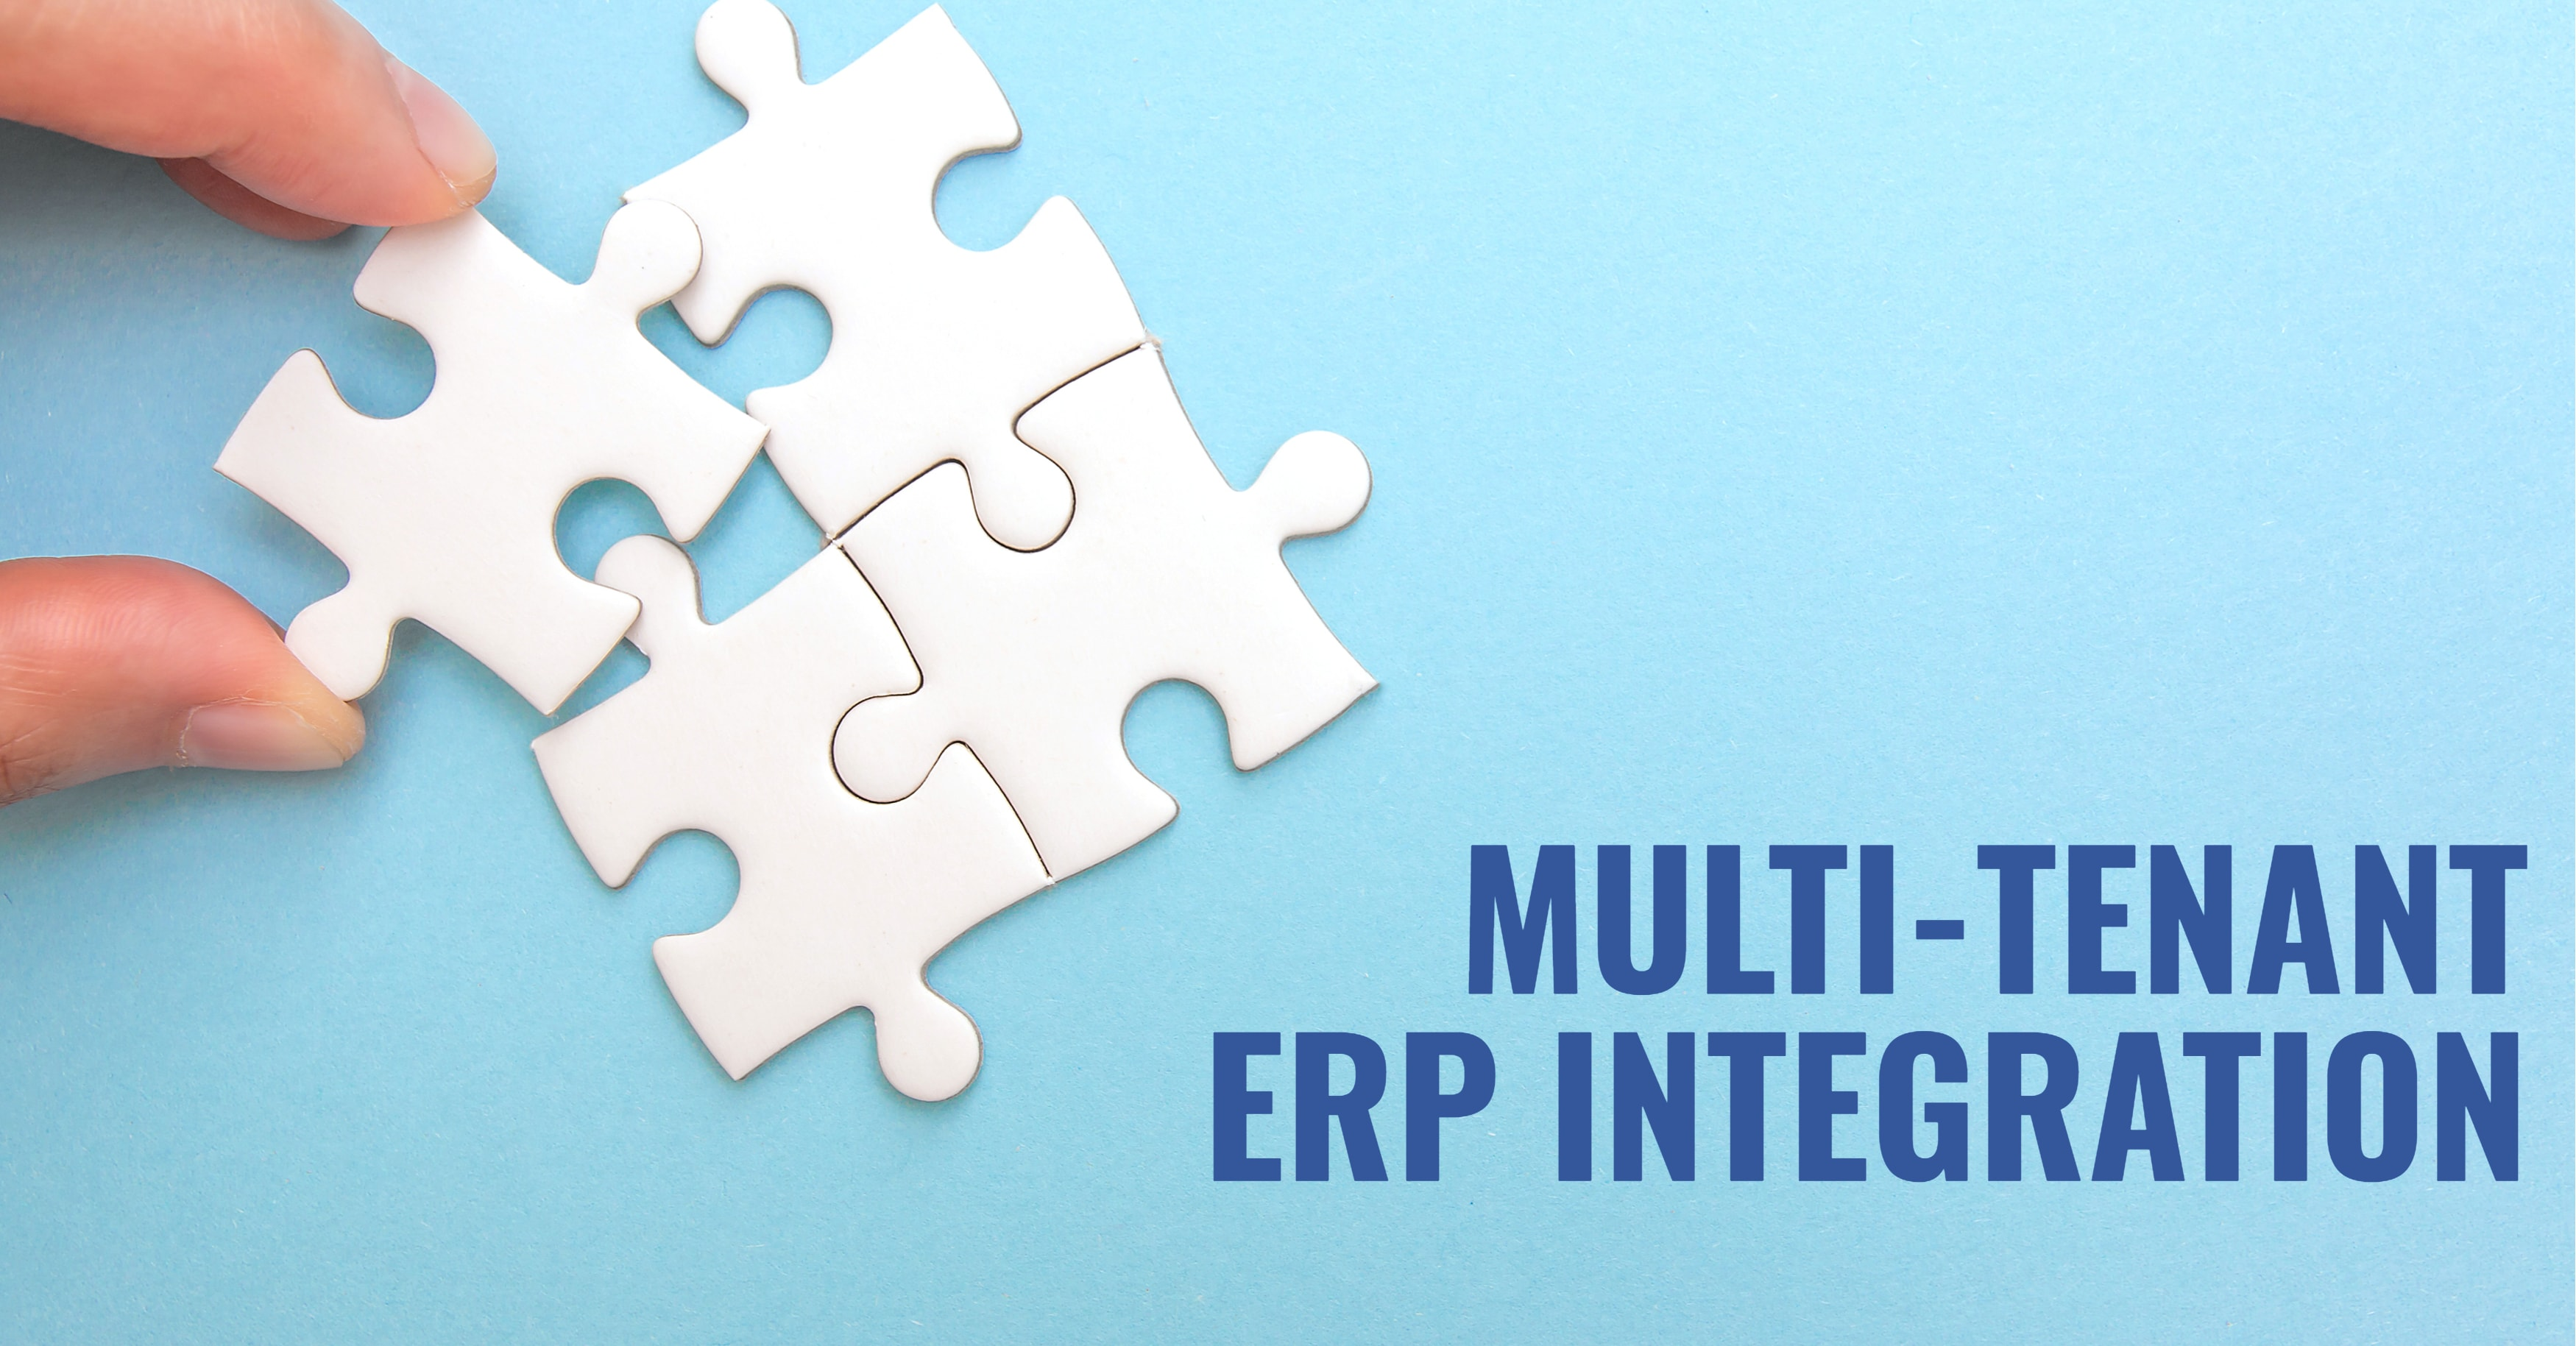 What Can a Multi-Tenant ERP Integration Do for Your Business?